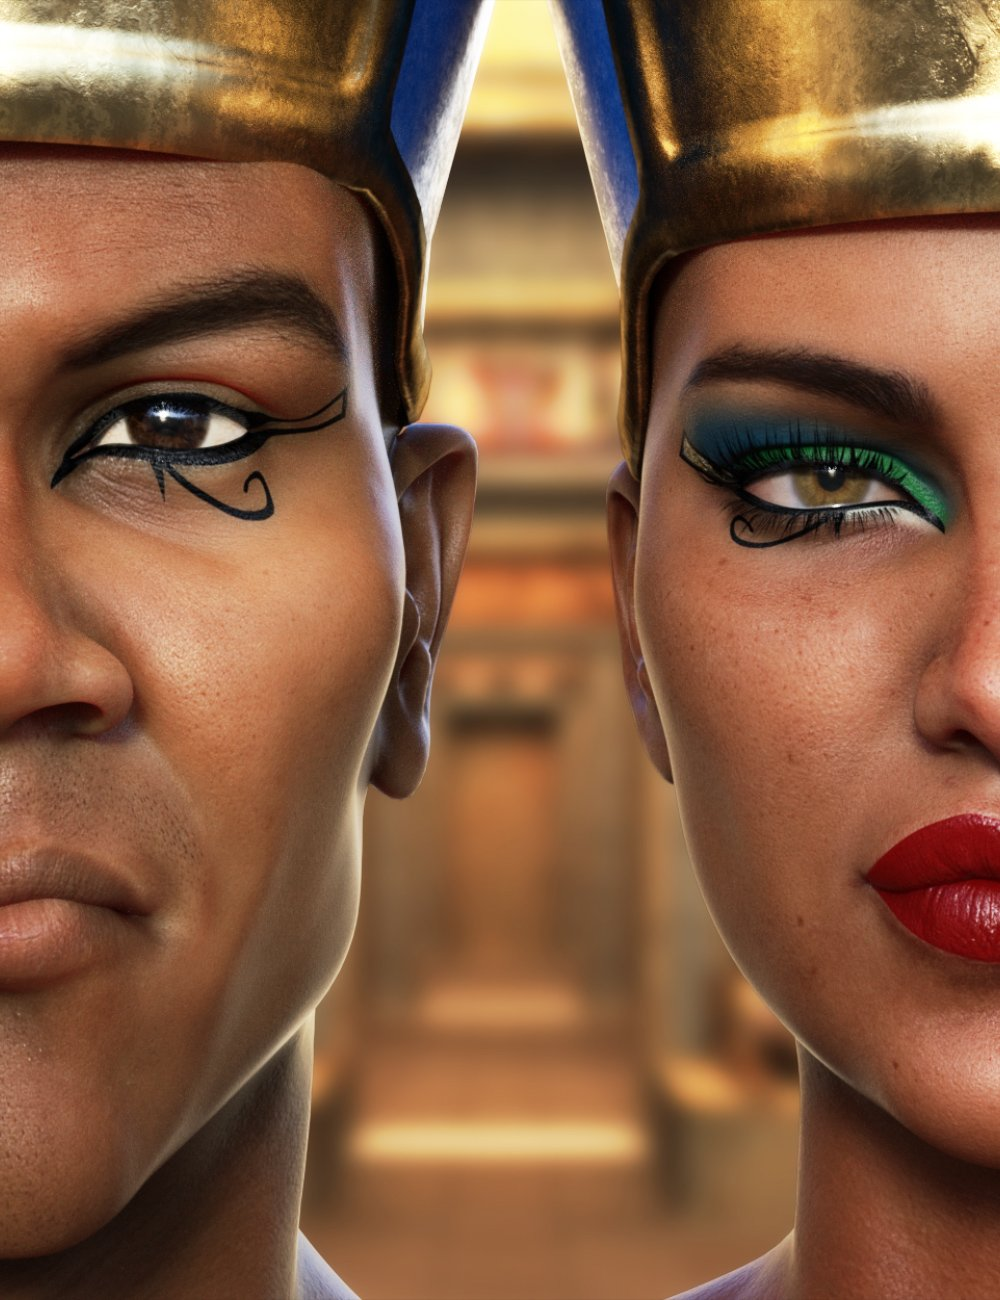 Ancient Egypt Makeup by: Neikdian, 3D Models by Daz 3D